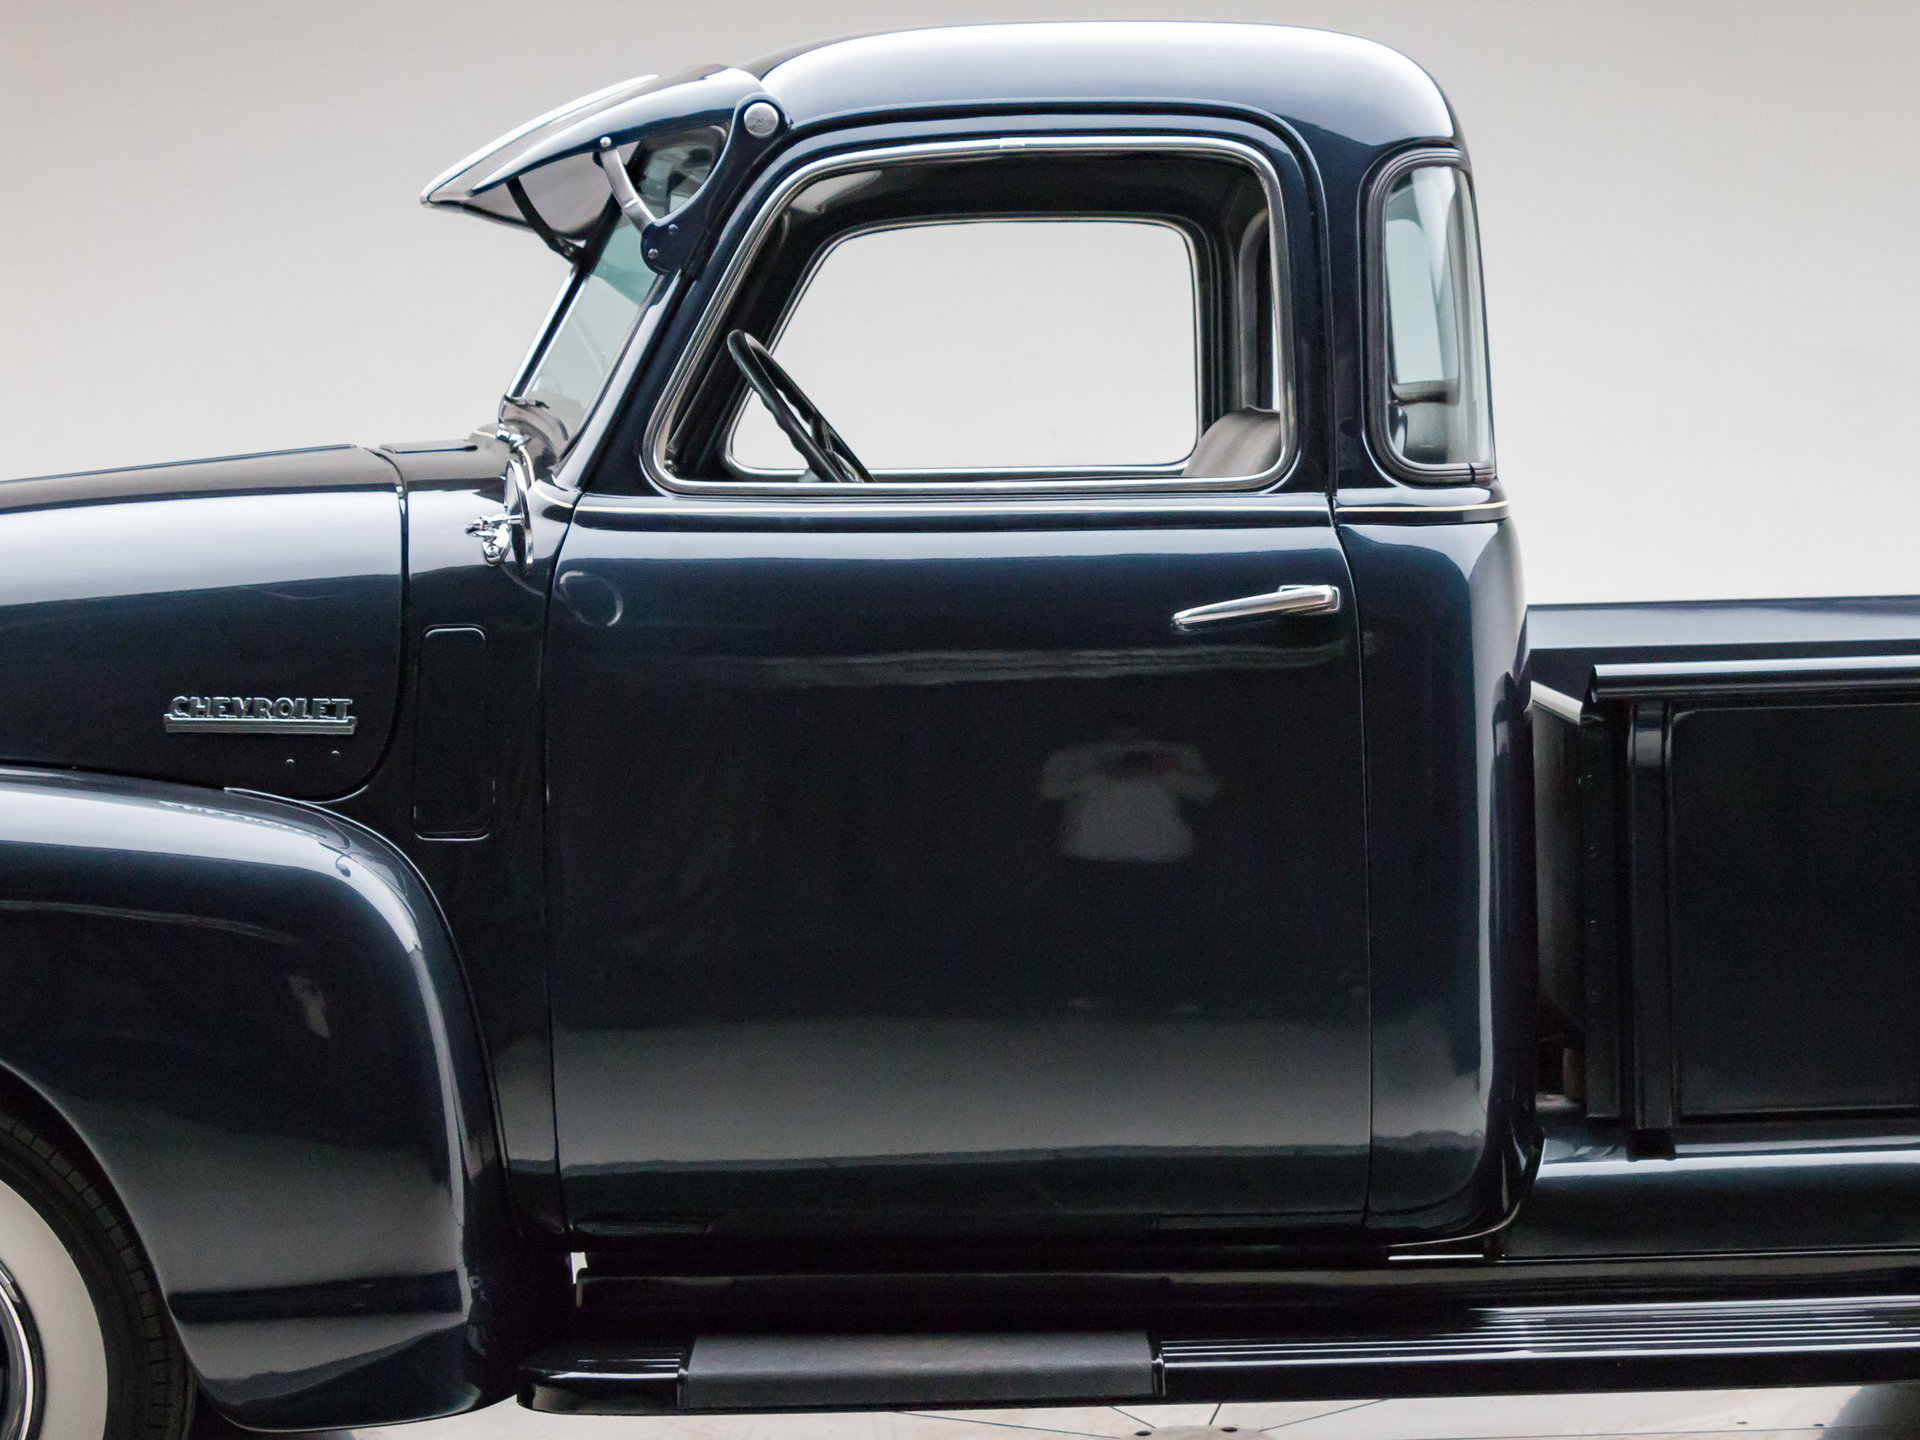 1949 Chevrolet 3100 Duffys Classic Cars Chevy Pickup Truck Interior For Sale